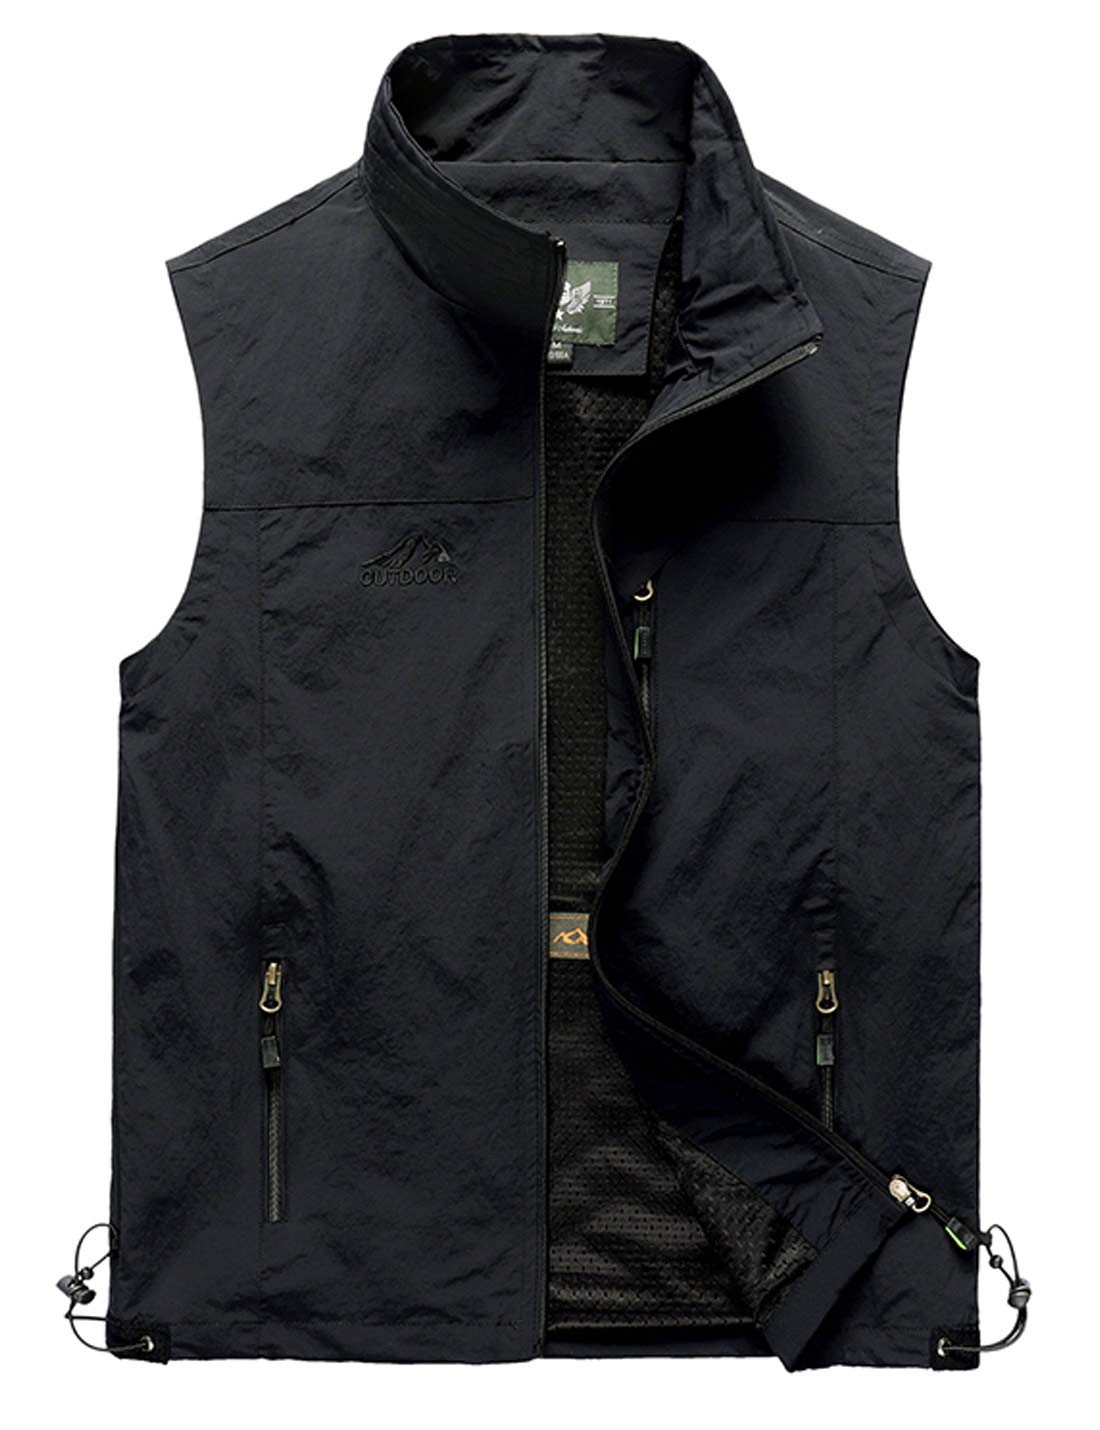 Gihuo Men's Casual Outdoor Lightweight Quick Dry Travel Vest Outerwear (Black, X-Large) by Gihuo